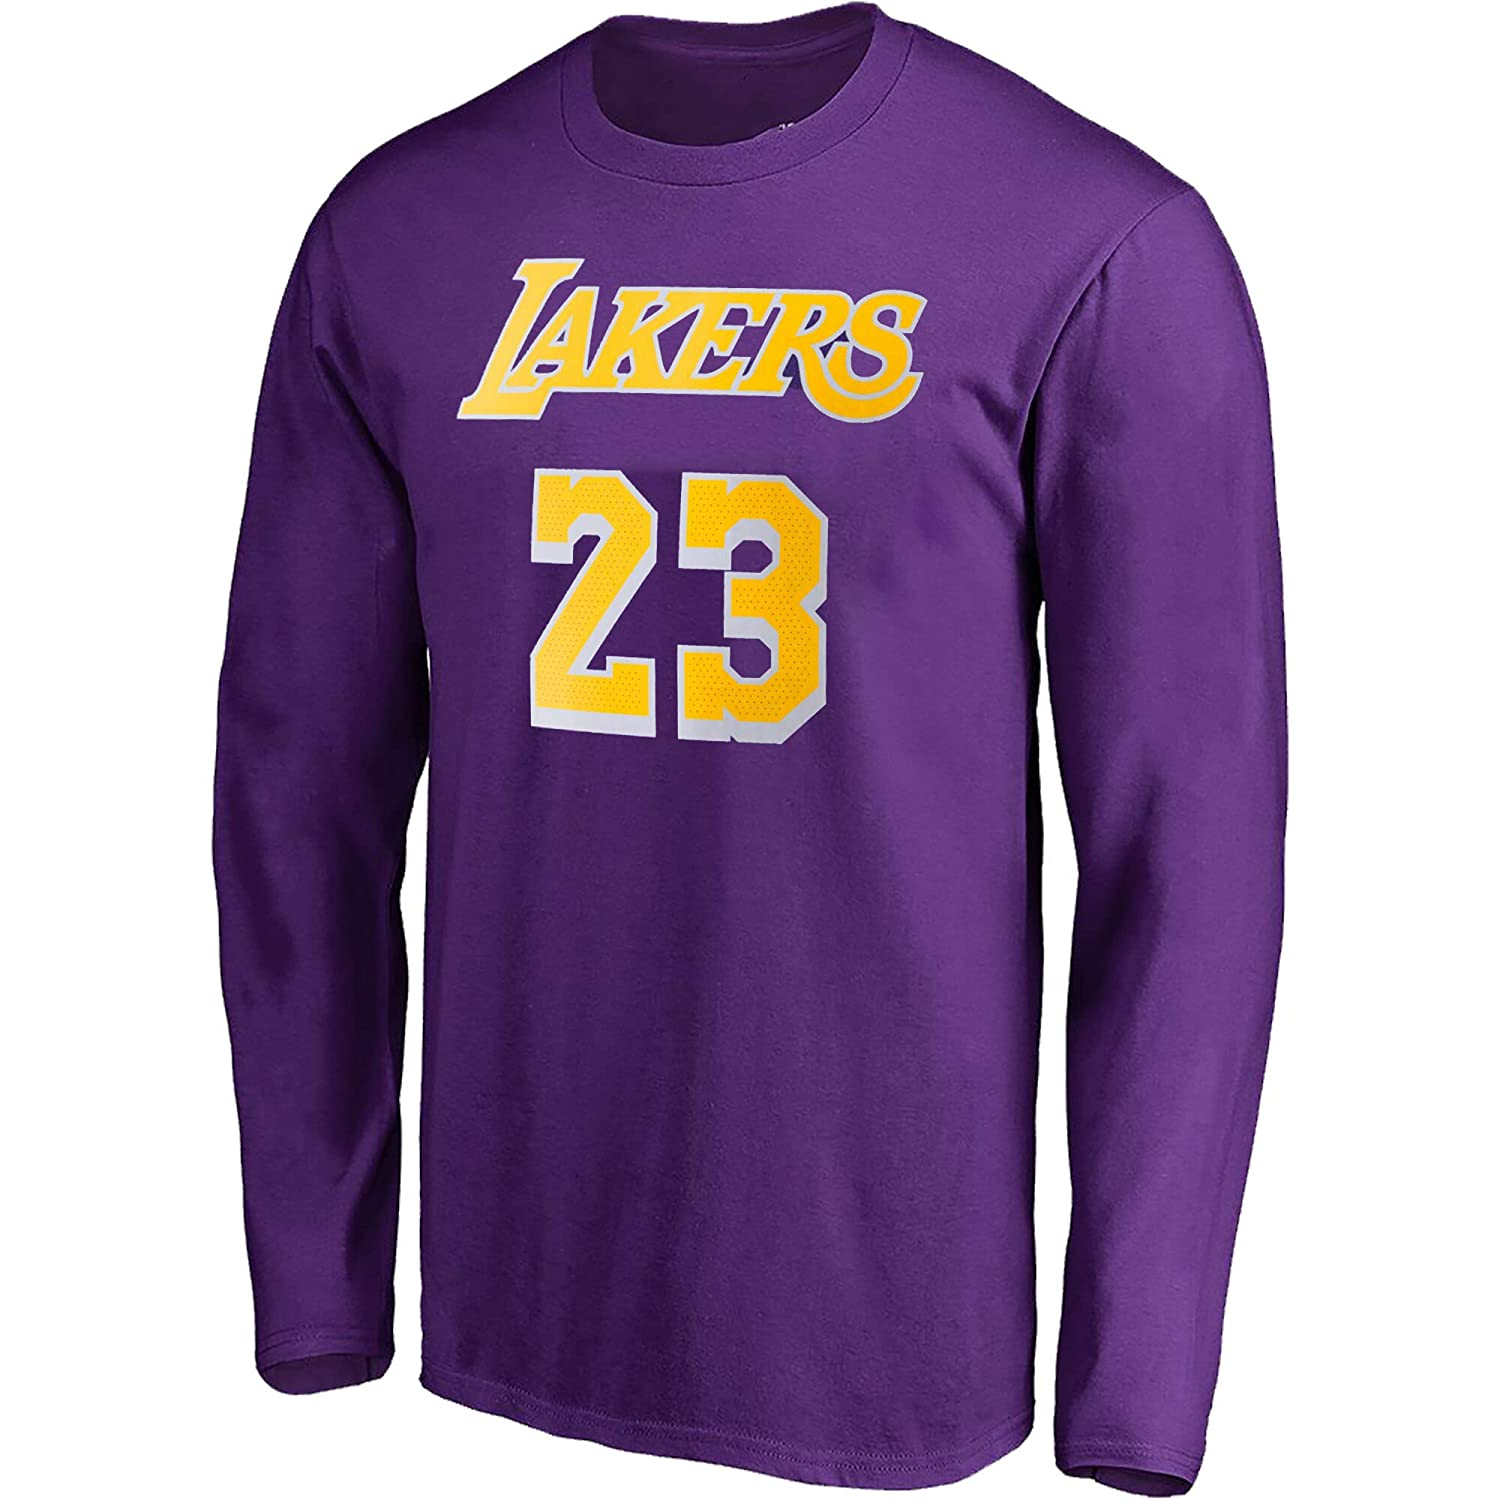 Outerstuff NBA Youth Game Time Team Color Player Name and Number Long Sleeve Jersey T-Shirt